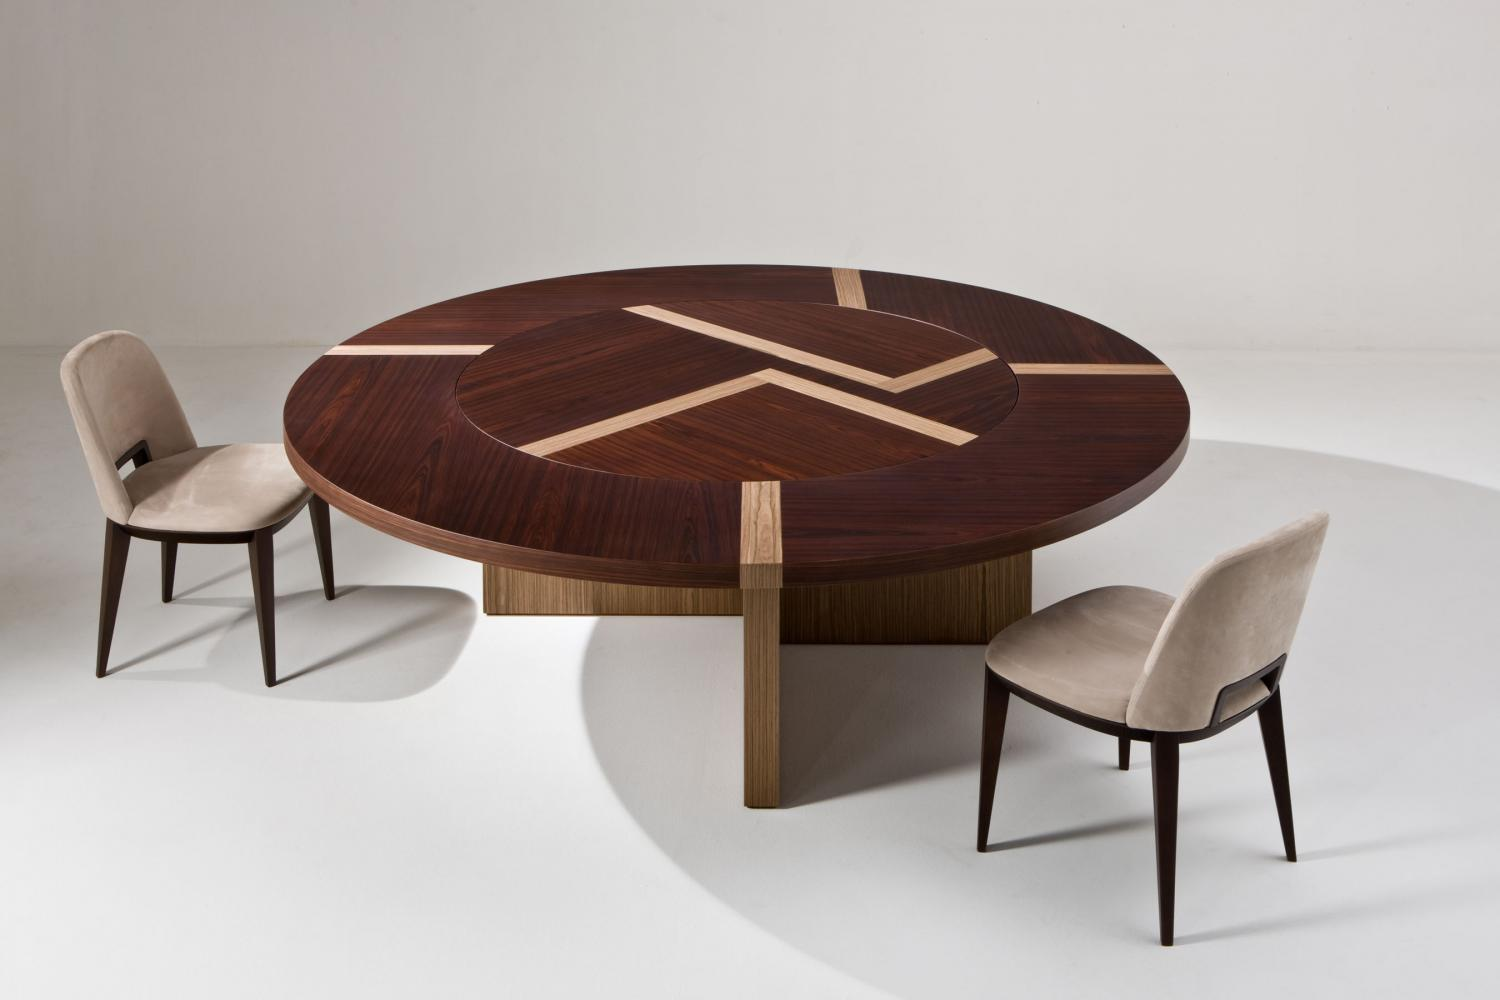 laurameroni bd 07 lazy susan rotating top table in rosewood and walnut canaletto